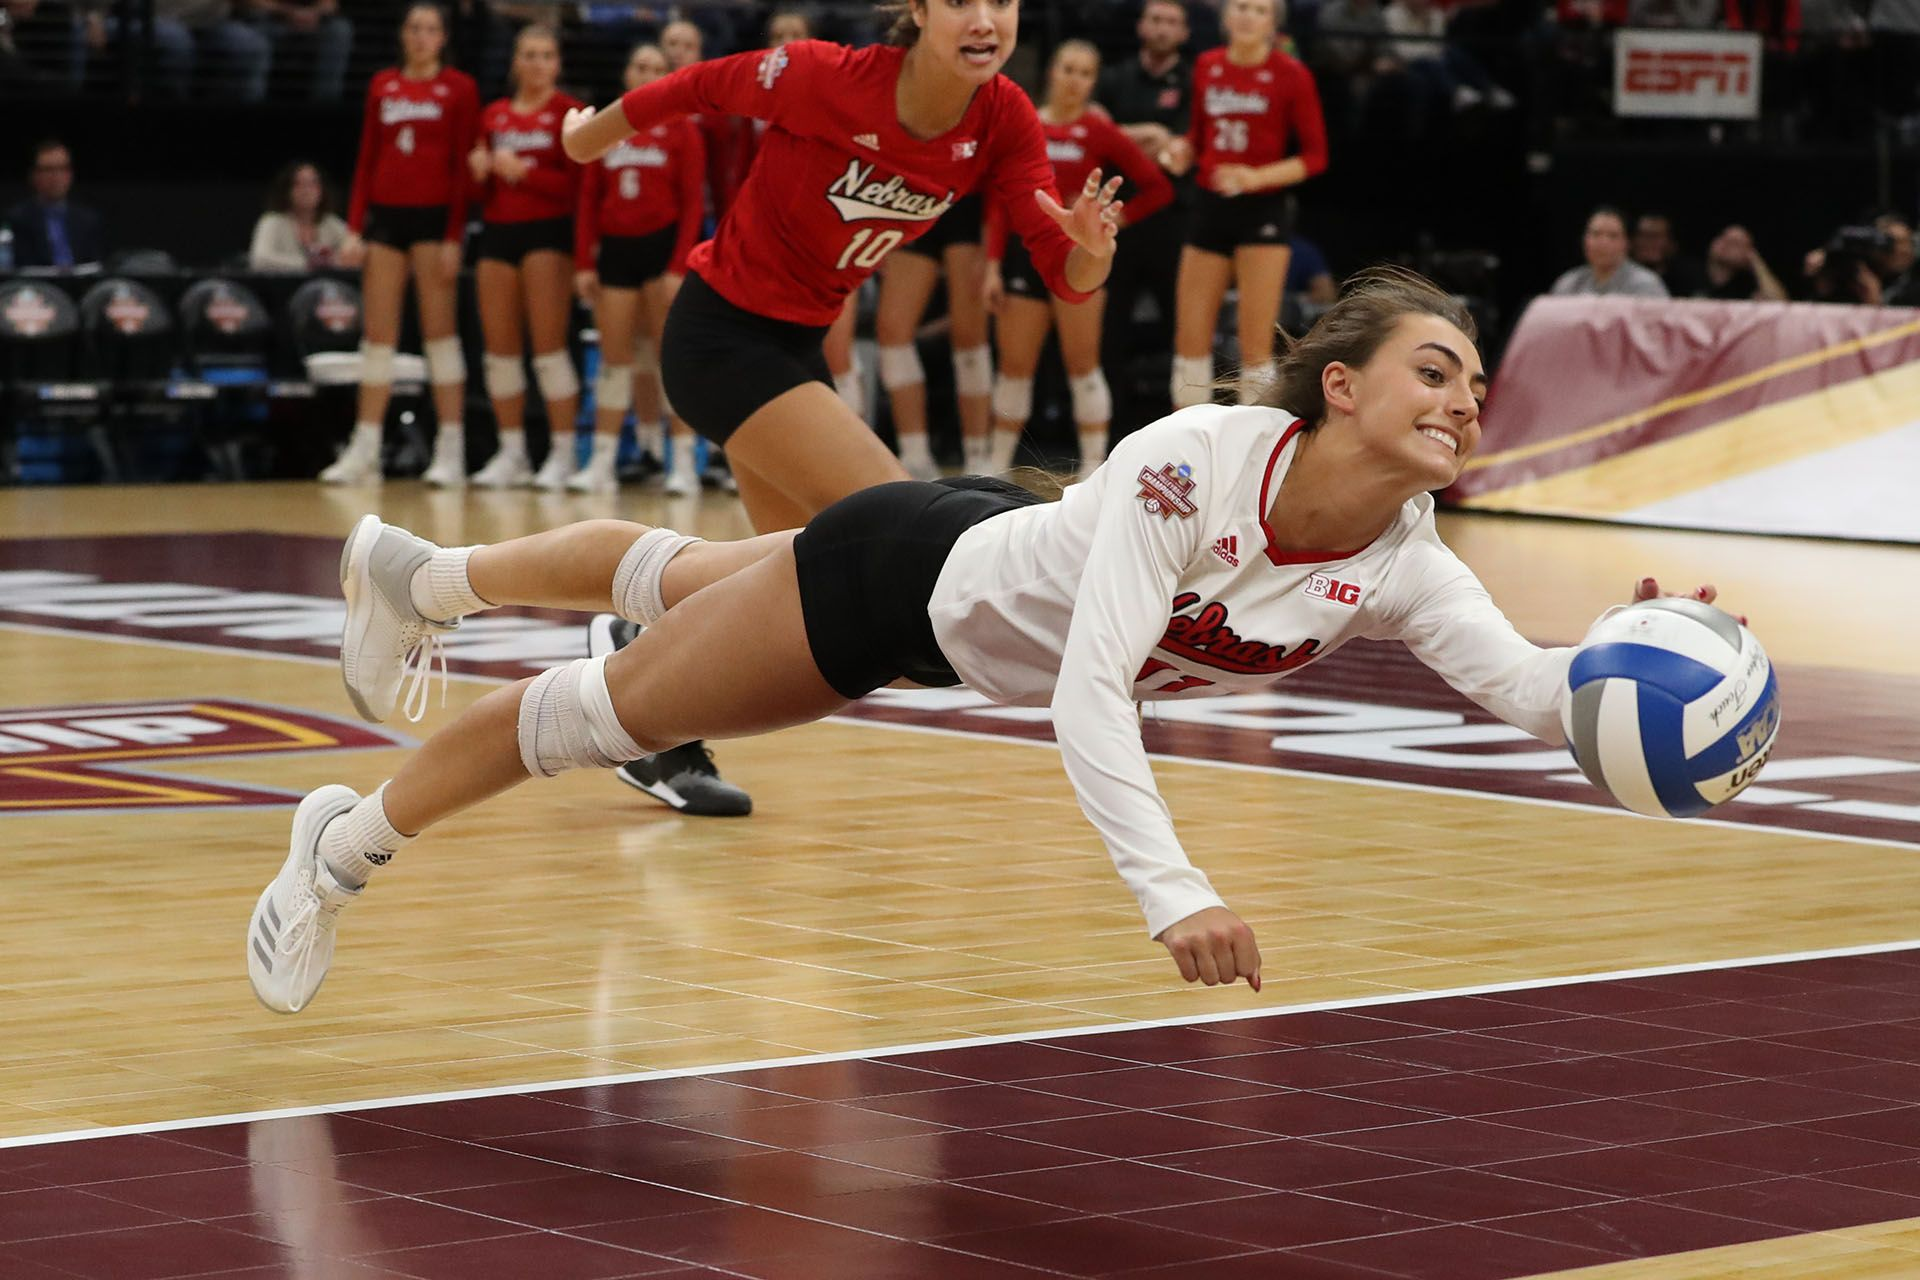 Ncaa Minneapolis Photo Gallery Featuring Stanford Byu Illinois And Nebraska And The Work Of E Volleyball Photography Volleyball Pictures Volleyball Workouts